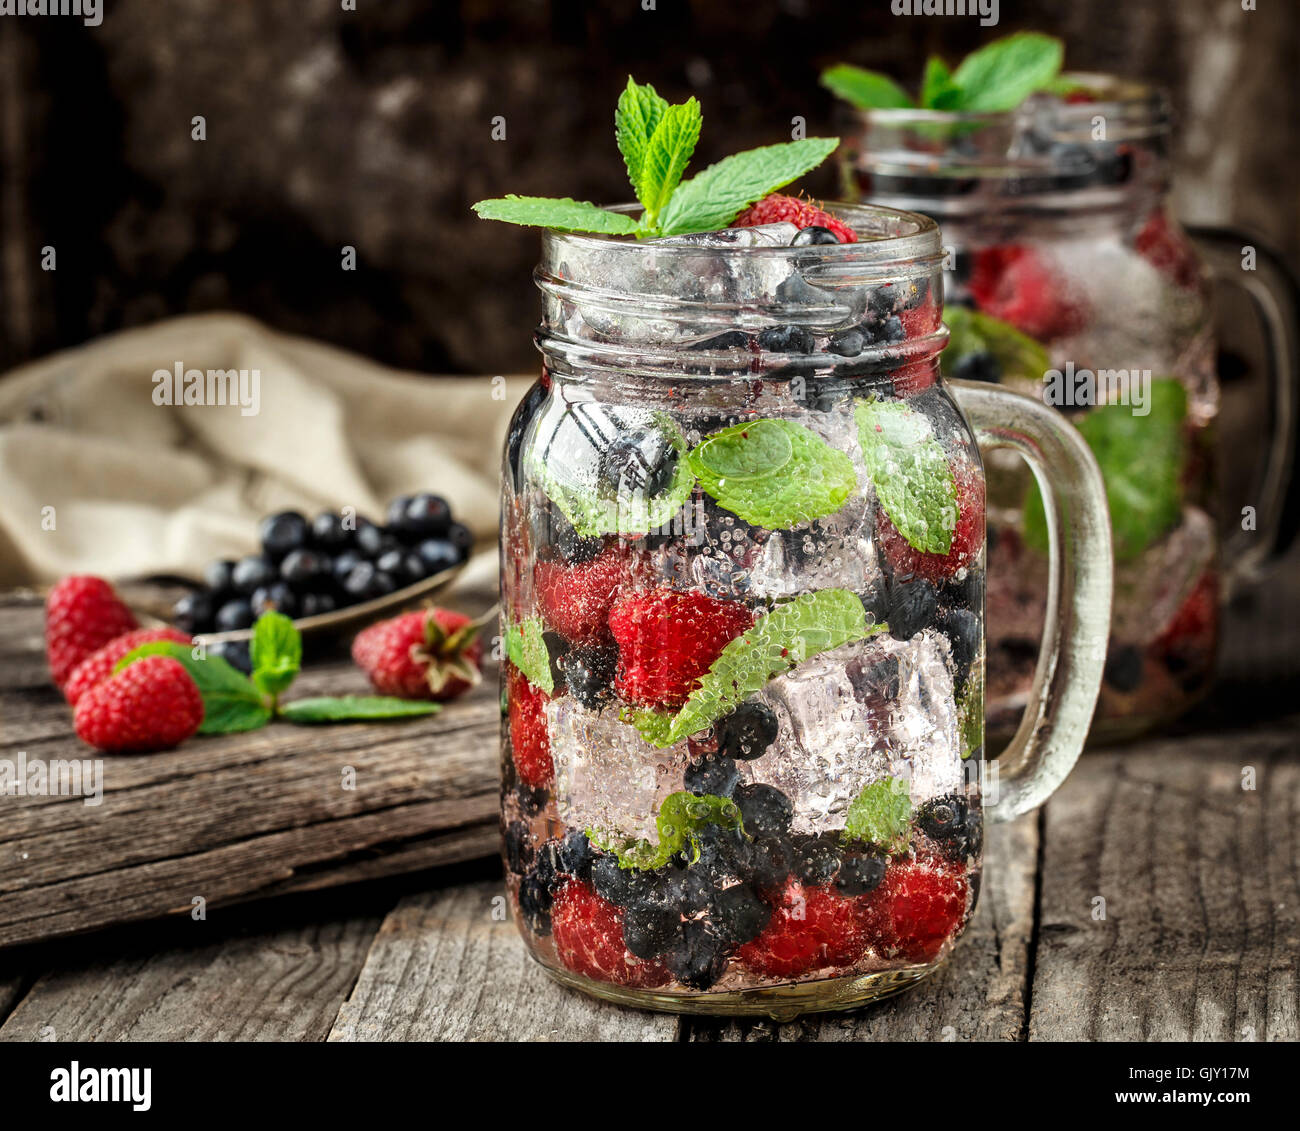 Detox drink with fresh berries, mint and ice in glass jars on wooden background - Stock Image